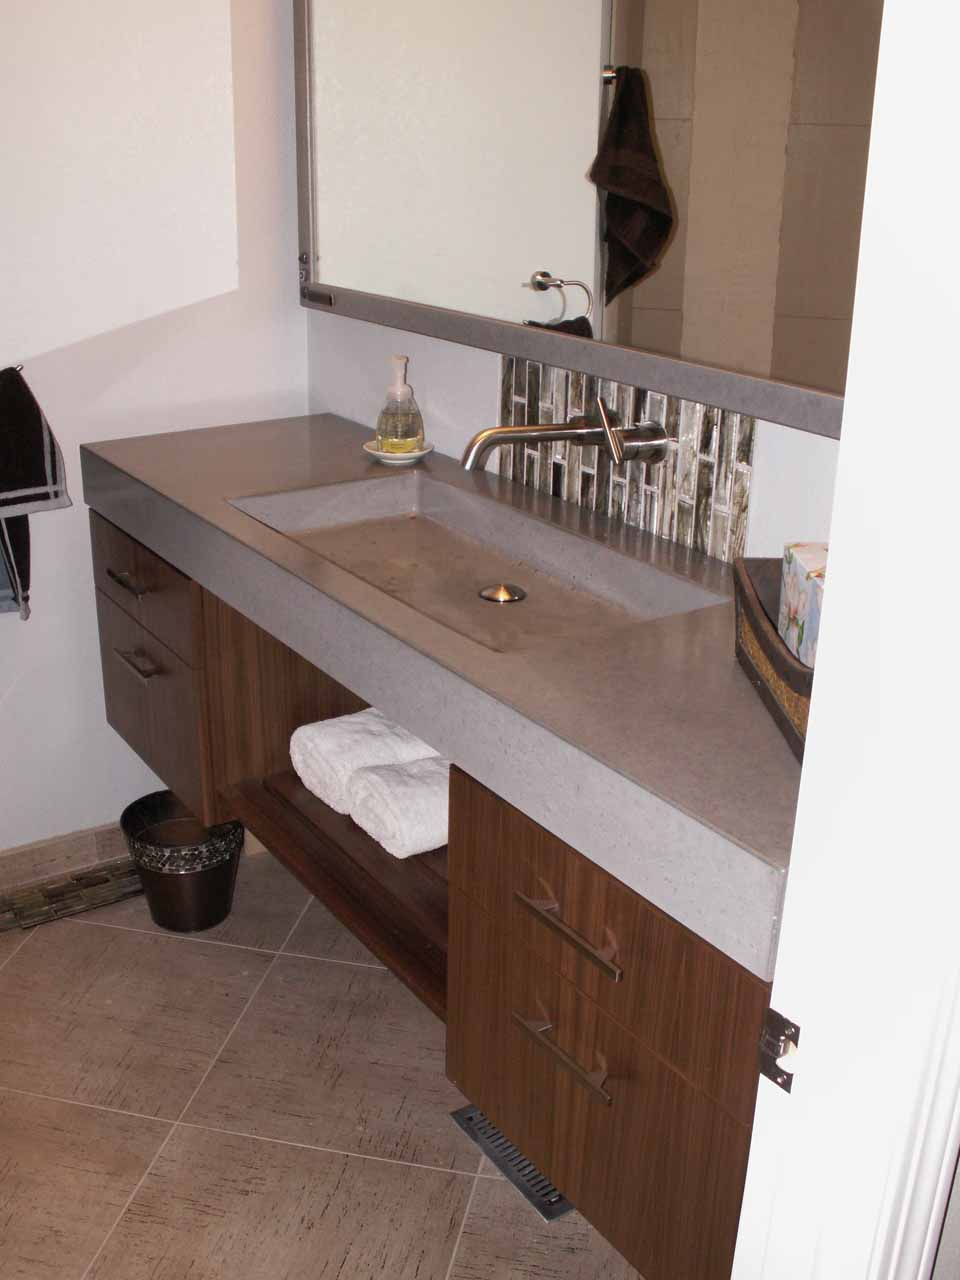 Picture of Subtle Integral Stone Sink